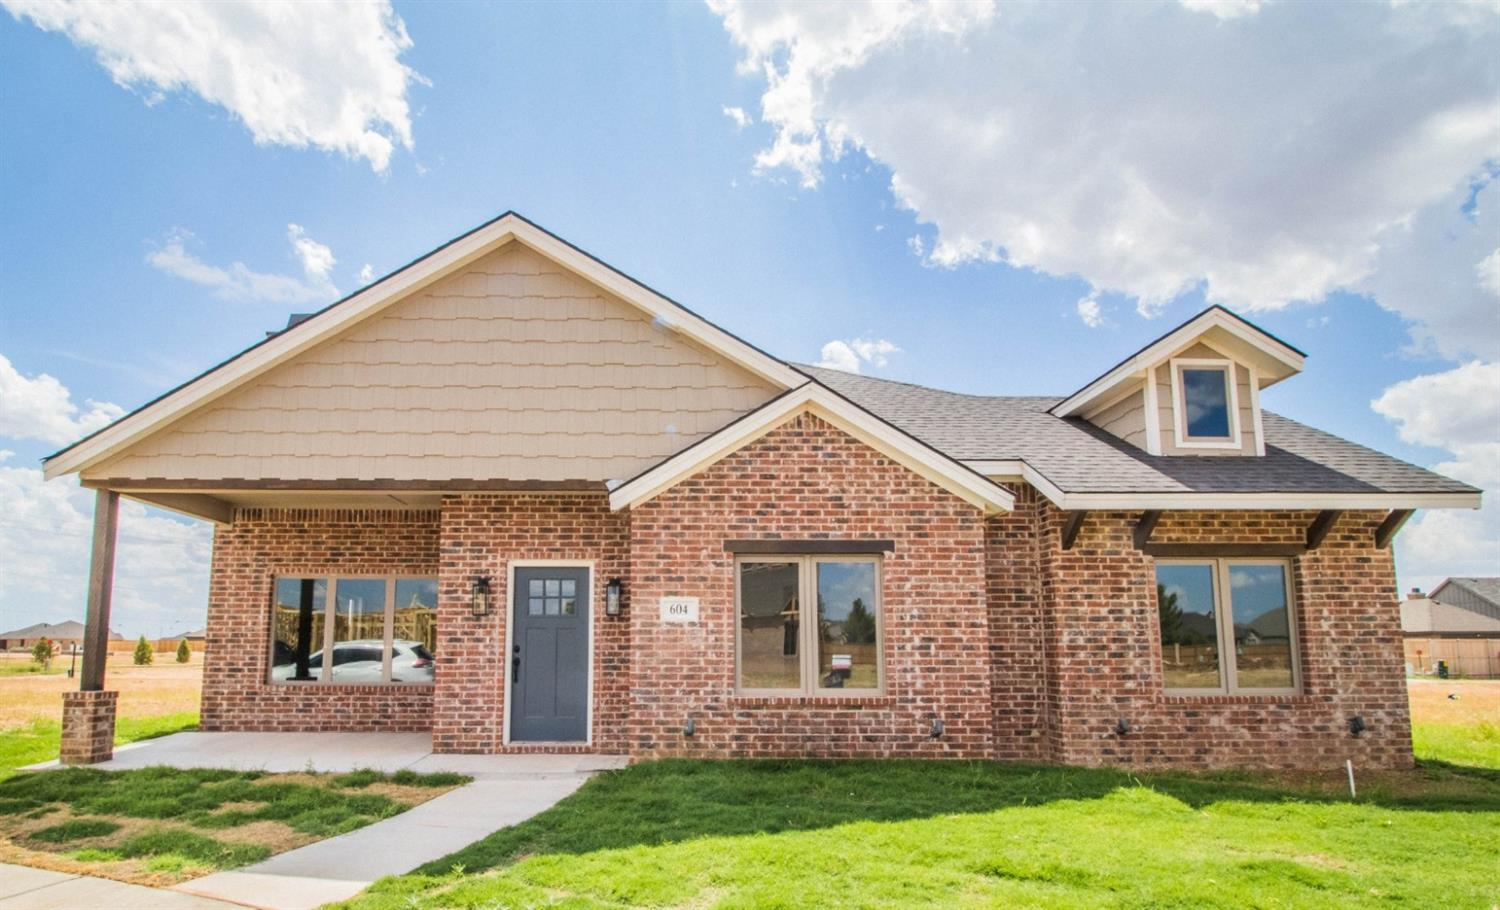 This delightful MCR property features a gorgeous brick and stone outer, soaring ceilings, and exquisite lighting features. Small details are what make a home, so come witness the beautiful granite countertops and tasteful color combinations! And don't forget the shaded porch, perfect for warm summer nights.